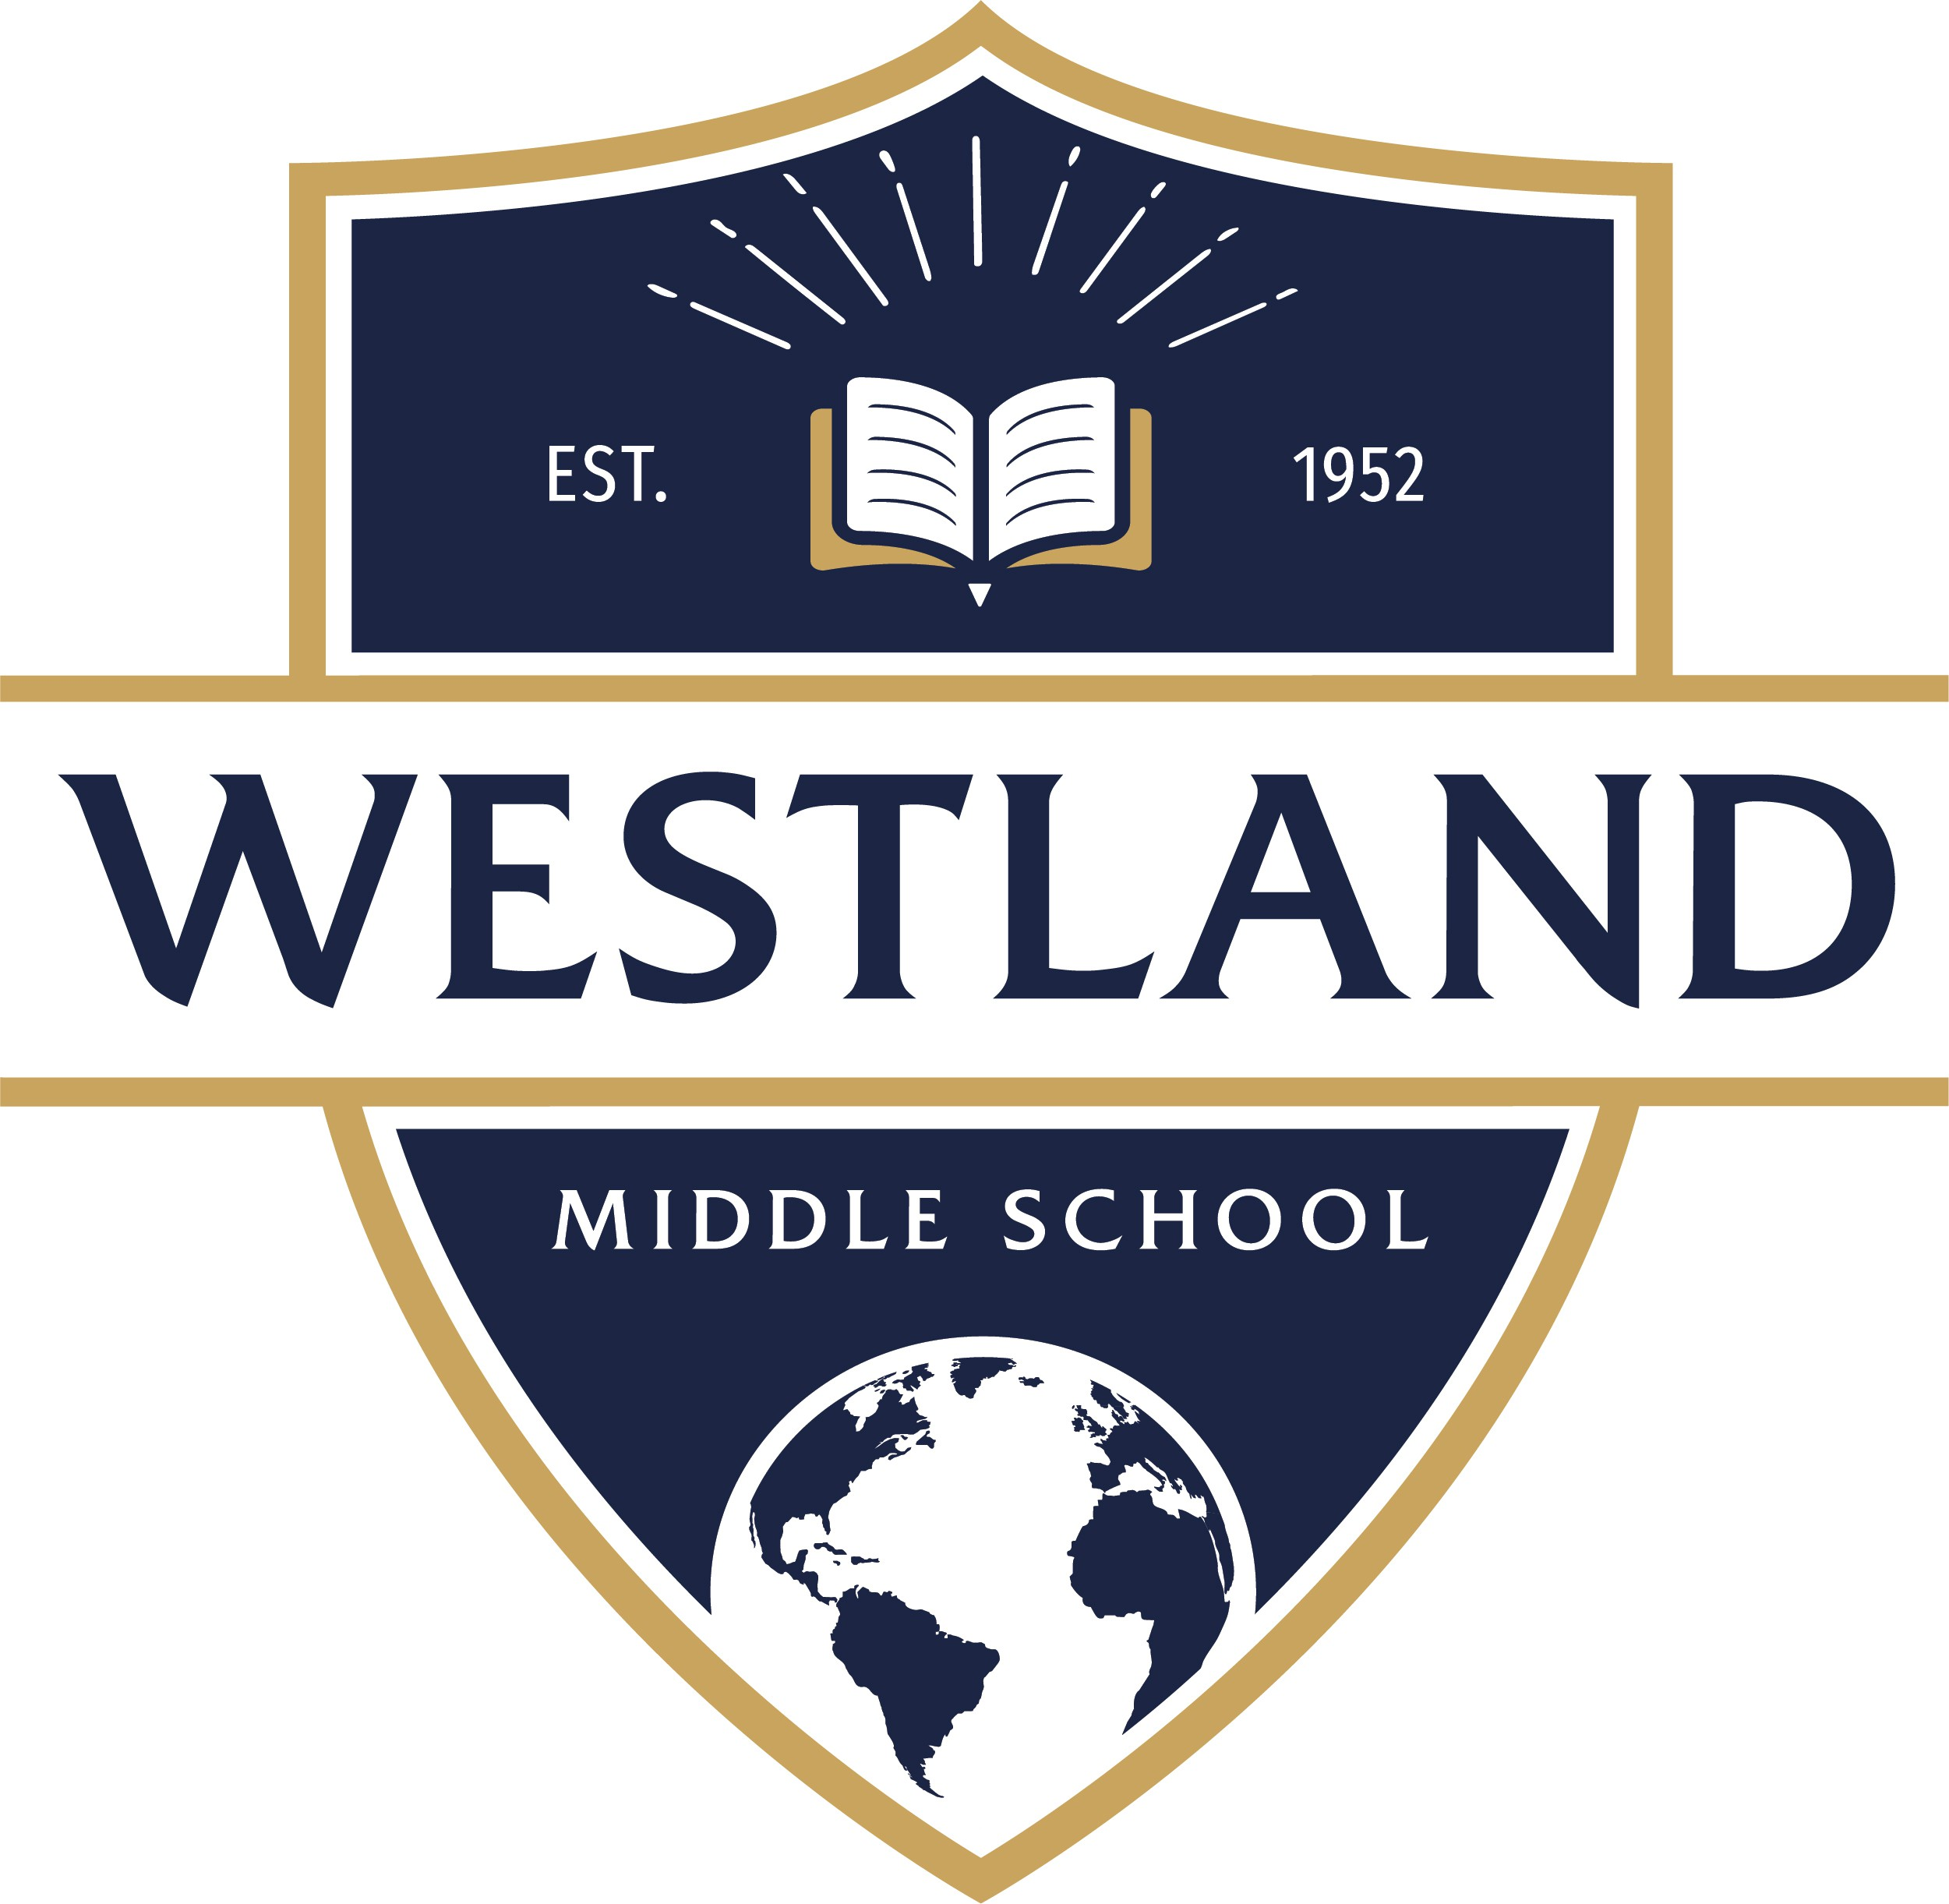 Westland Middle School needs your artful love